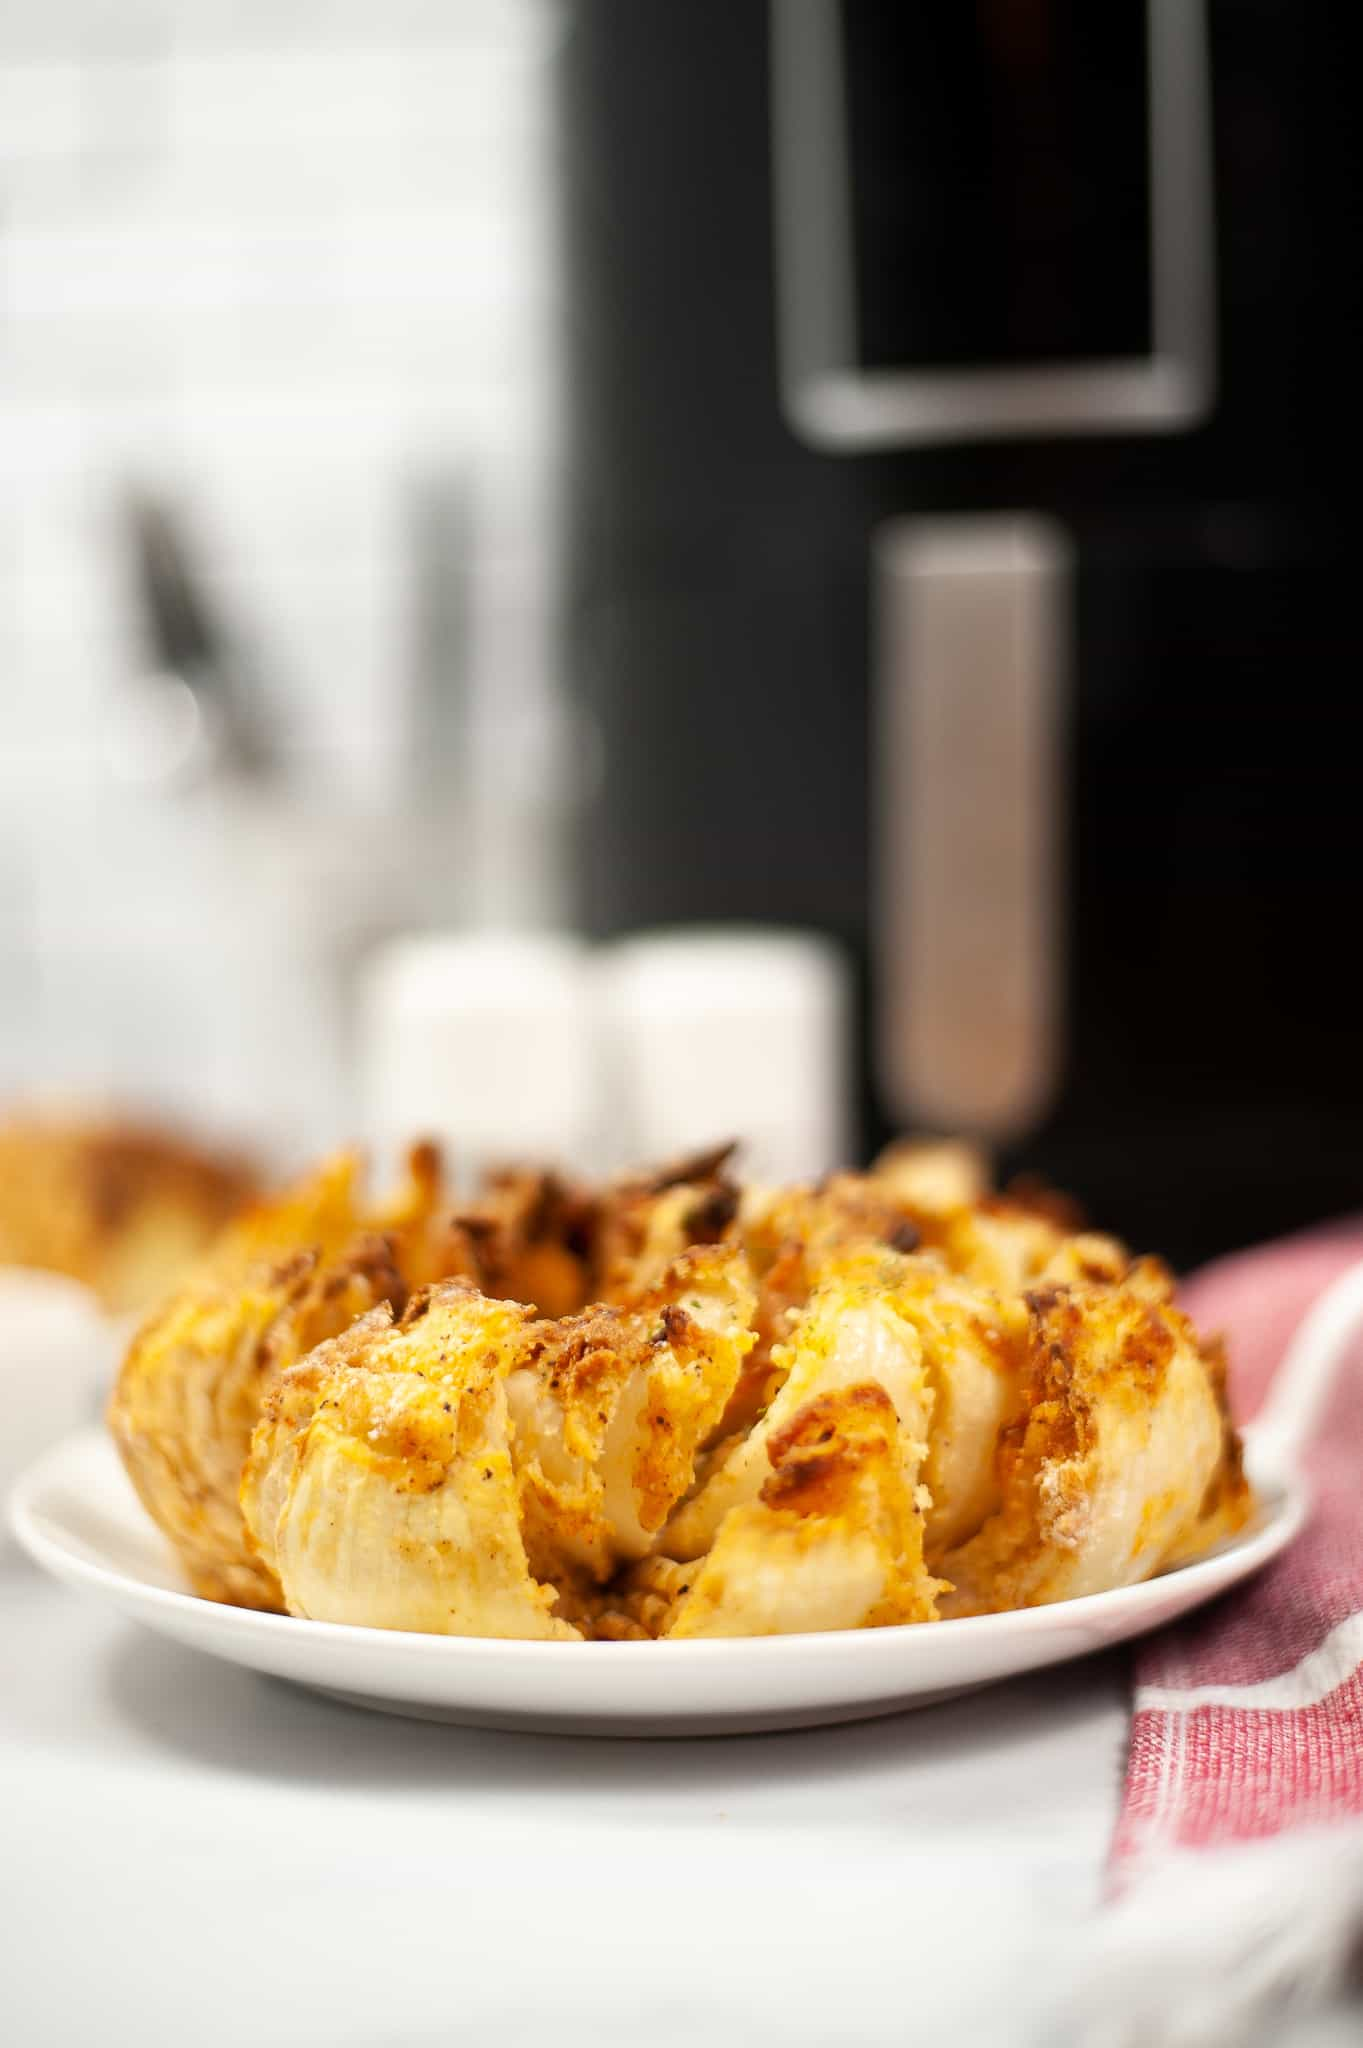 Side view of air fryer blooming onion on a white plate with air fryer and salt and pepper shakers in the background.